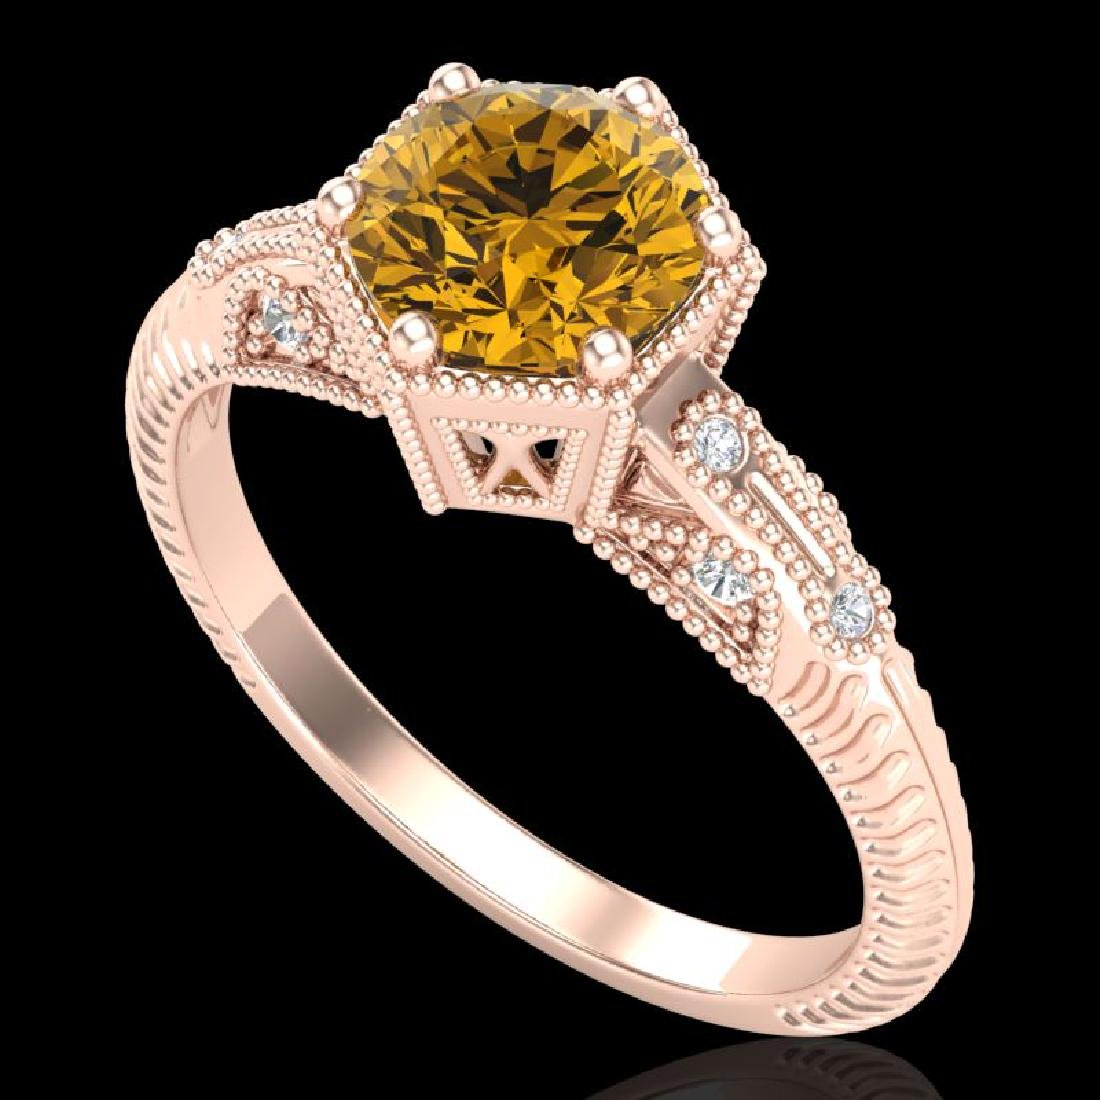 1.17 CTW Intense Fancy Yellow Diamond Engagement Art